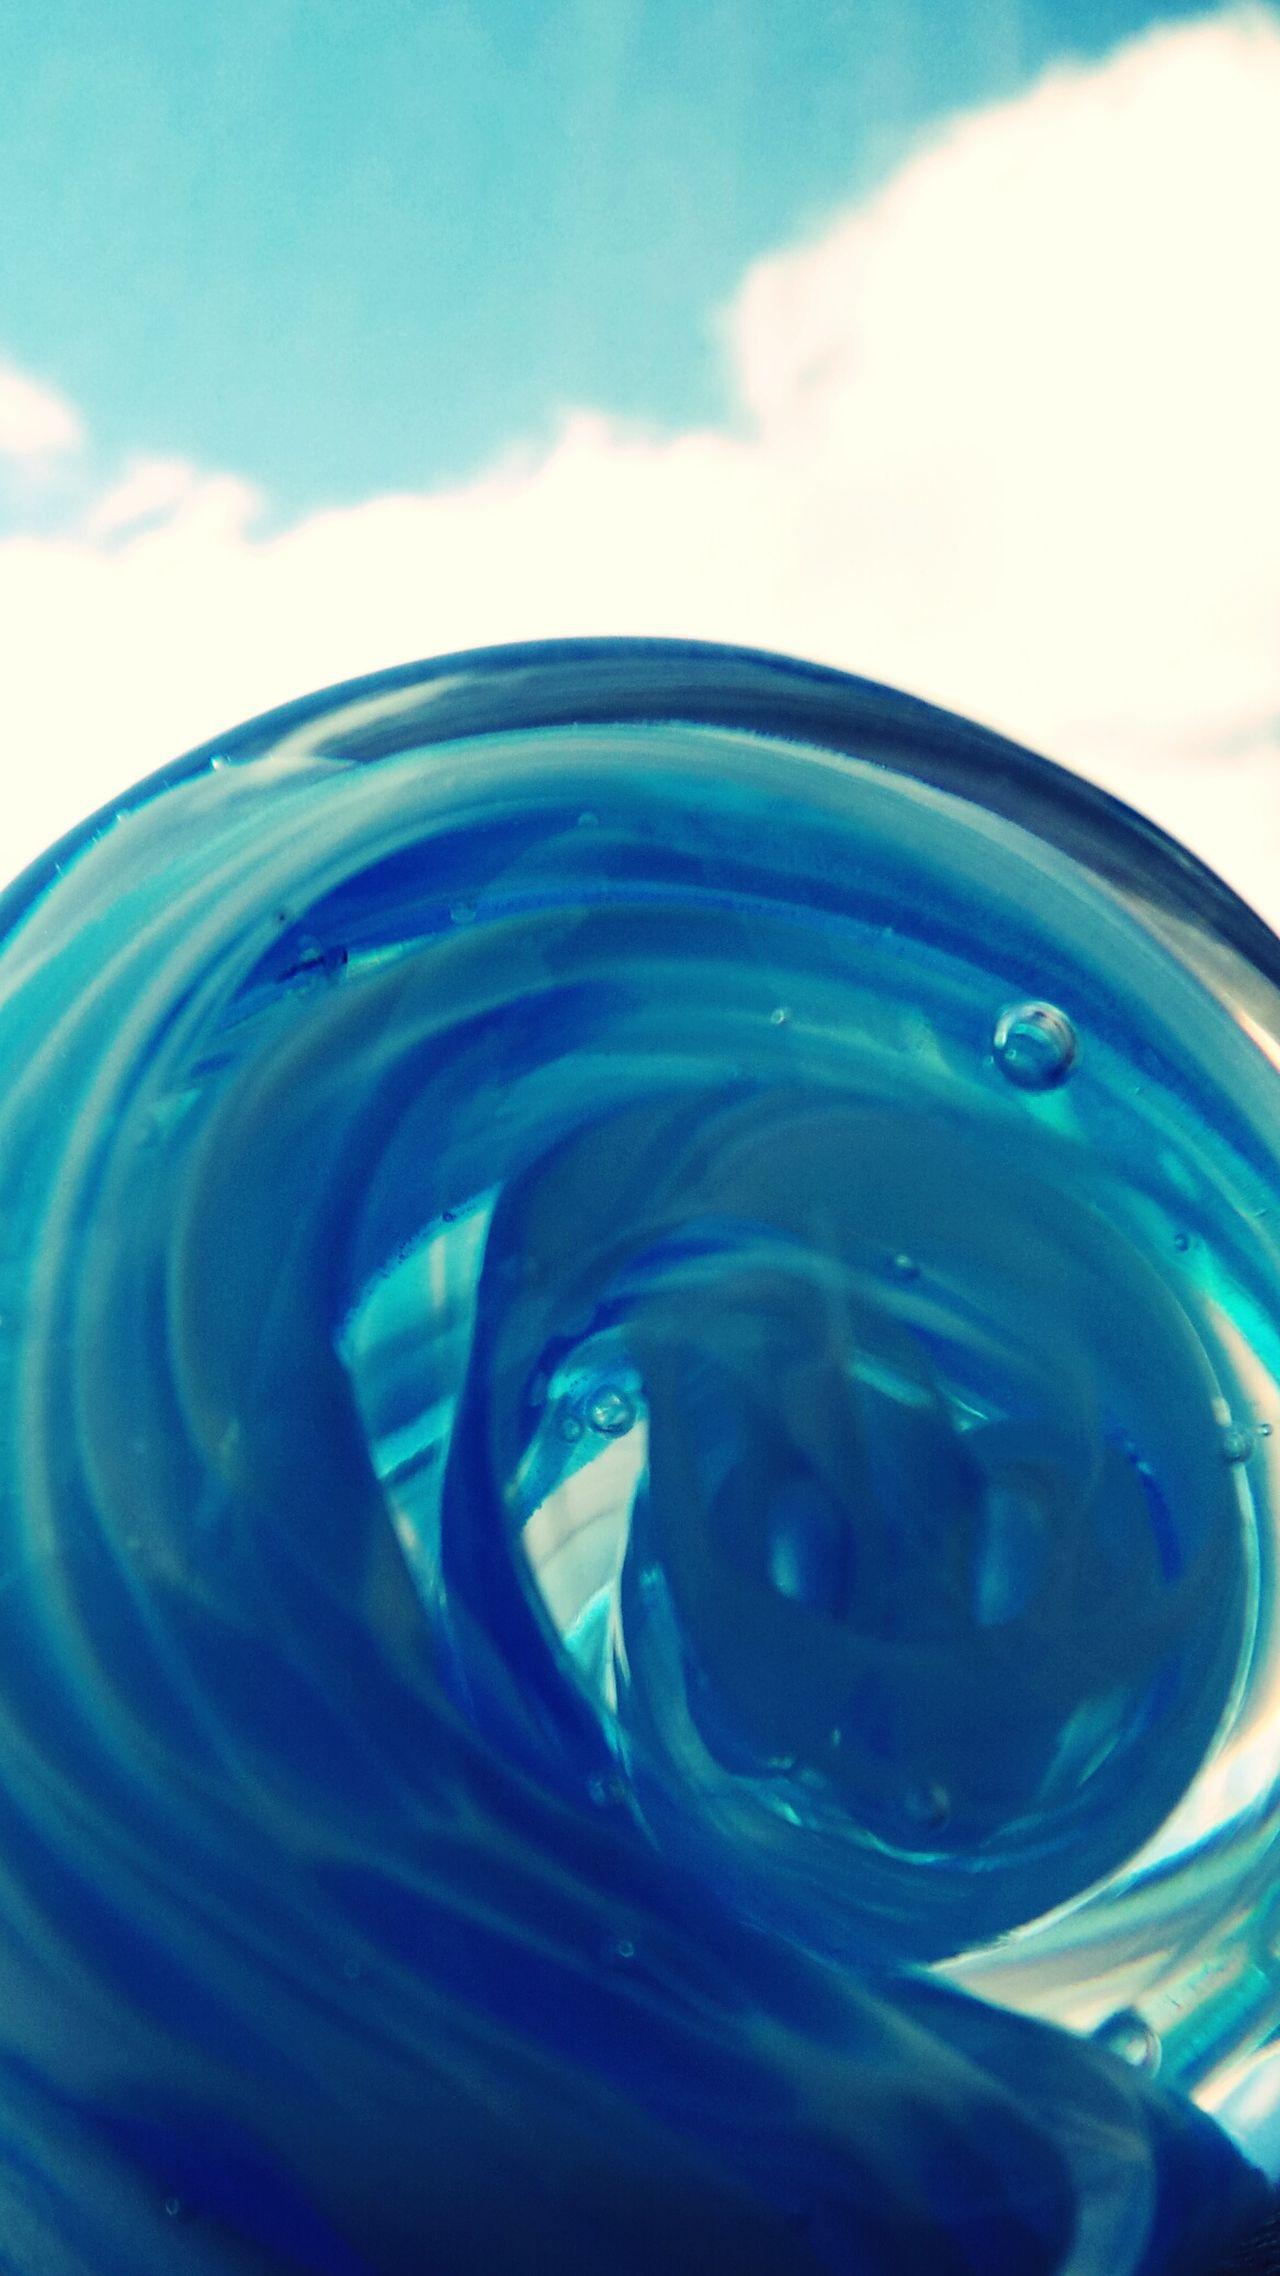 Turquoise By Motorola Swirling Clouds Sky And Clouds Swirled Turquoise and White Hand Blown Mirrored Multi-layered Reality Layered Blue Wave